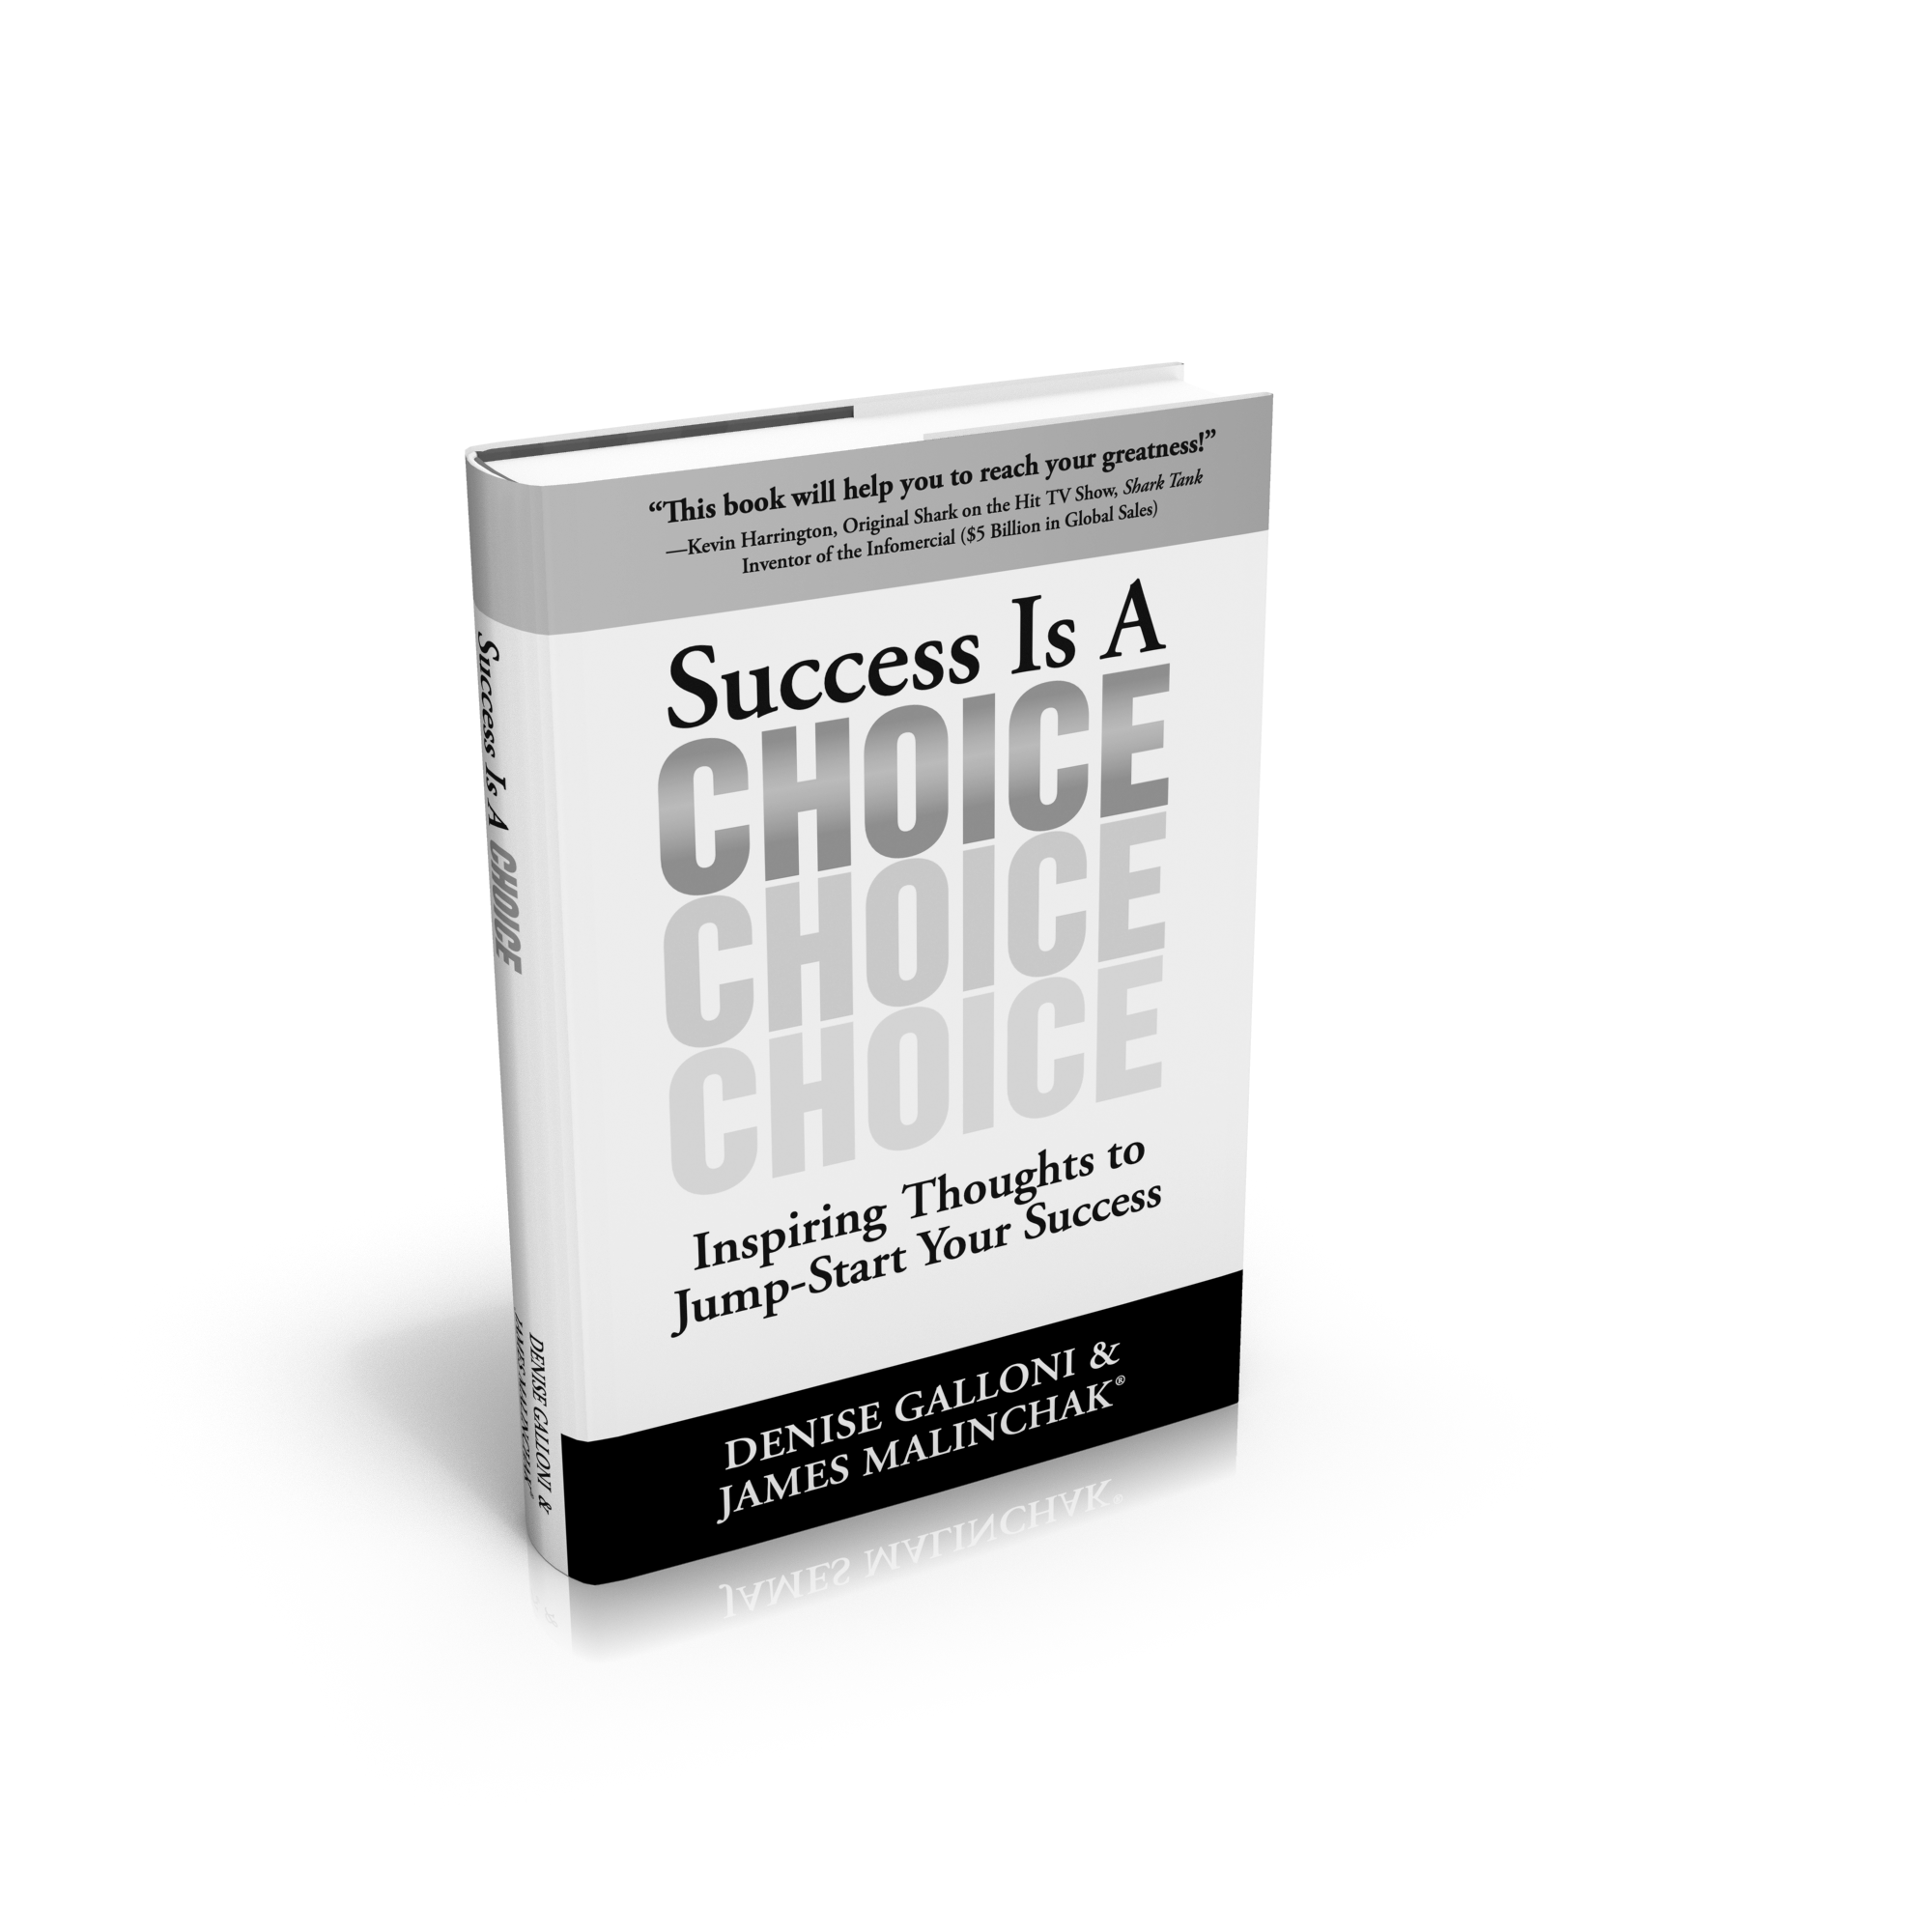 Sucess is a Choice by Denise Ann Galloni and James Malinchak